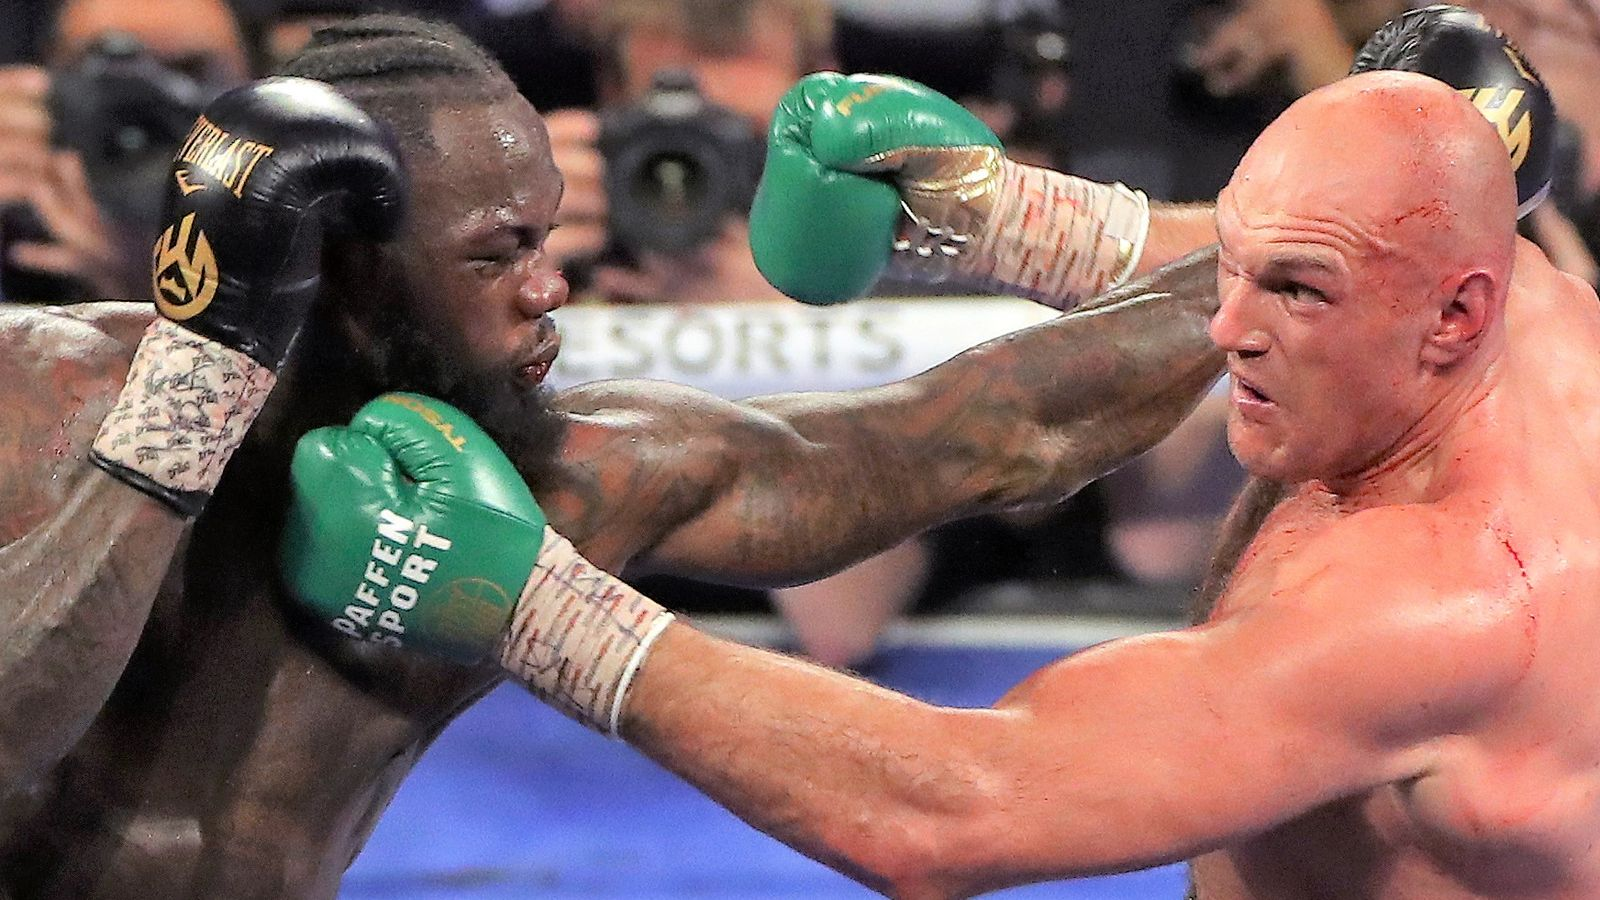 Deontay Wilder to fight Tyson Fury in July after refusing to step aside from third bout, says Bob Arum - Sky Sports